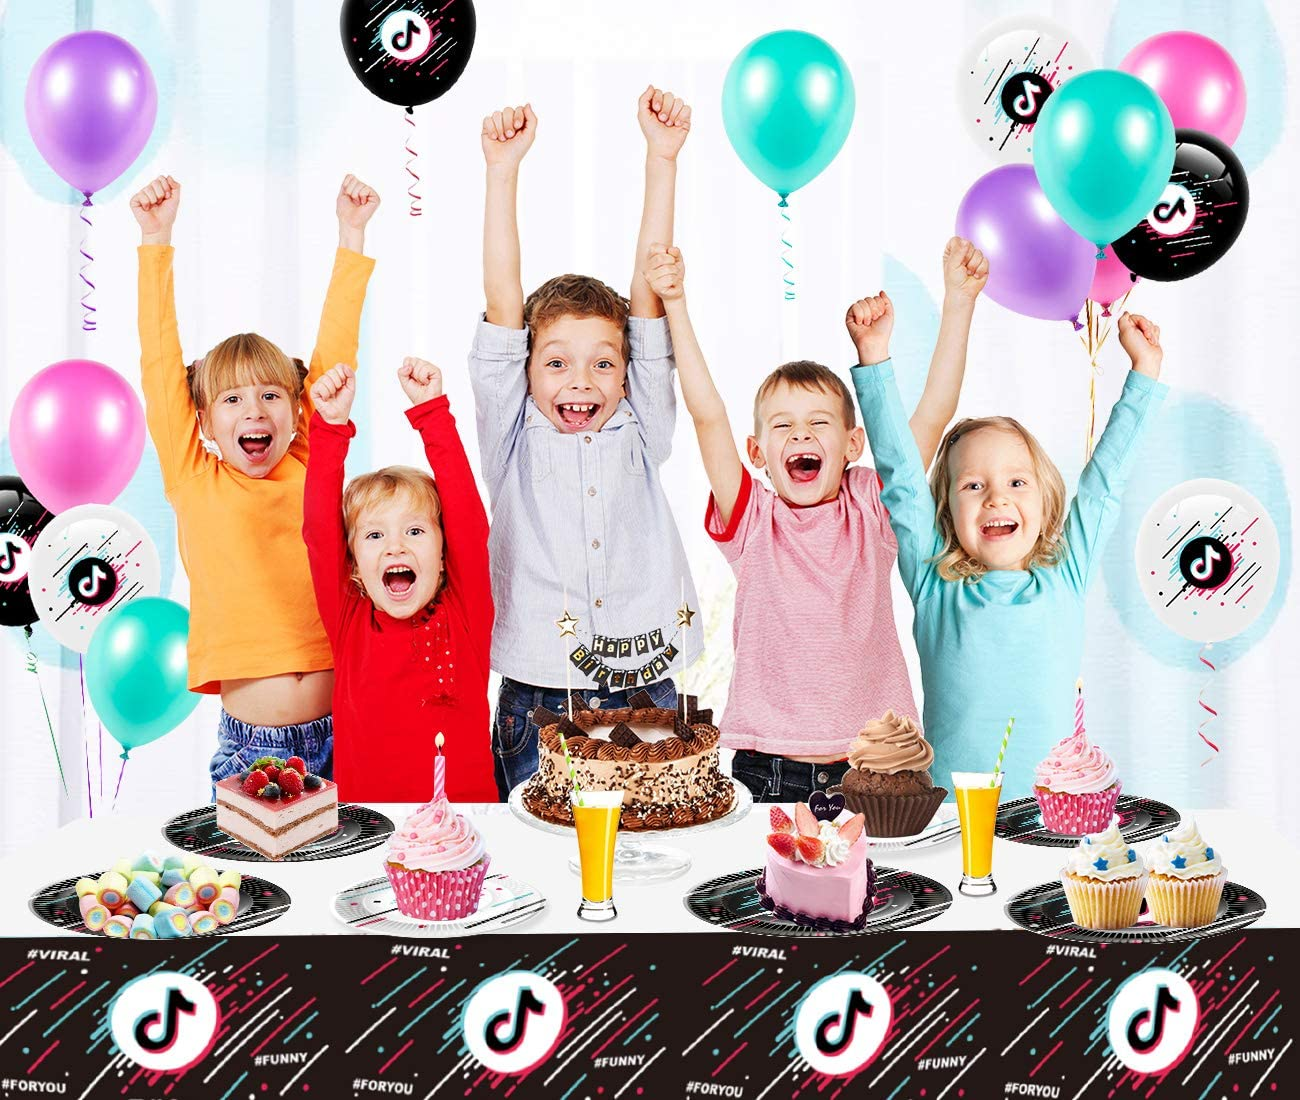 Tableware Set Included Tik Tok Tablecloth Knives 81PCS Tik Tok Birthday Party Supplies for 16 Guests Forks and Napkins Plates Tik Tok Party Decorations Social Media Party for Boys and Girls